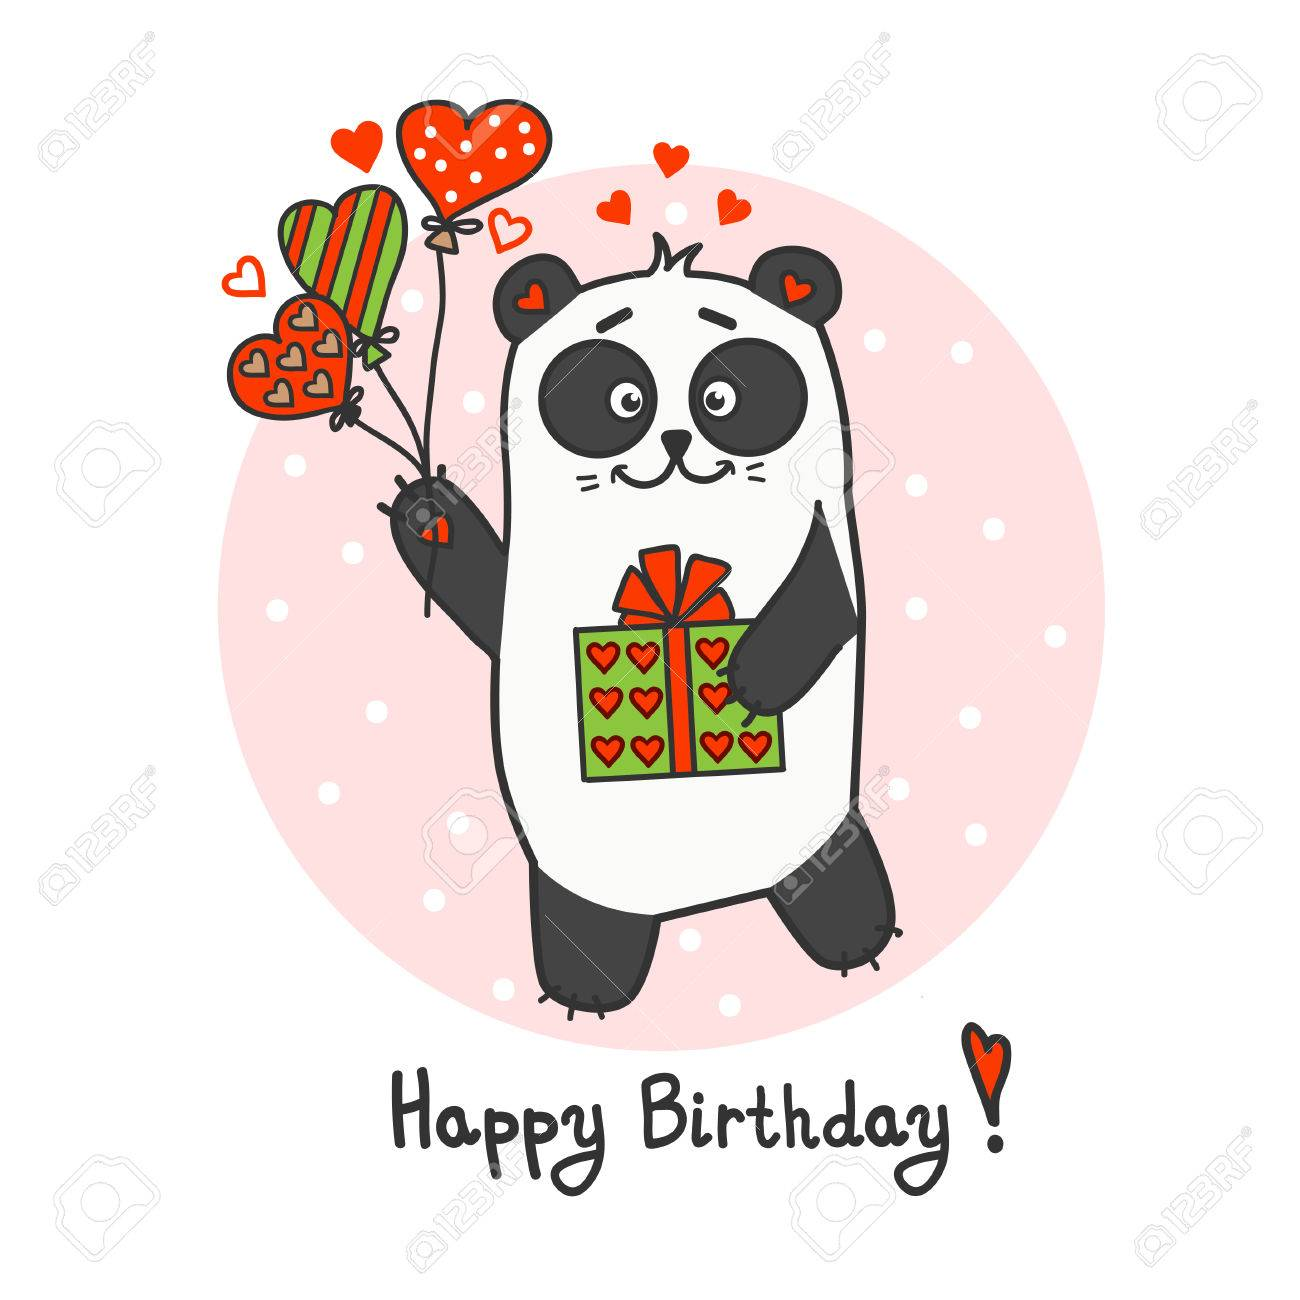 happy birthday panda clipart ; 53580477-happy-birthday-greeting-card-with-cute-little-panda